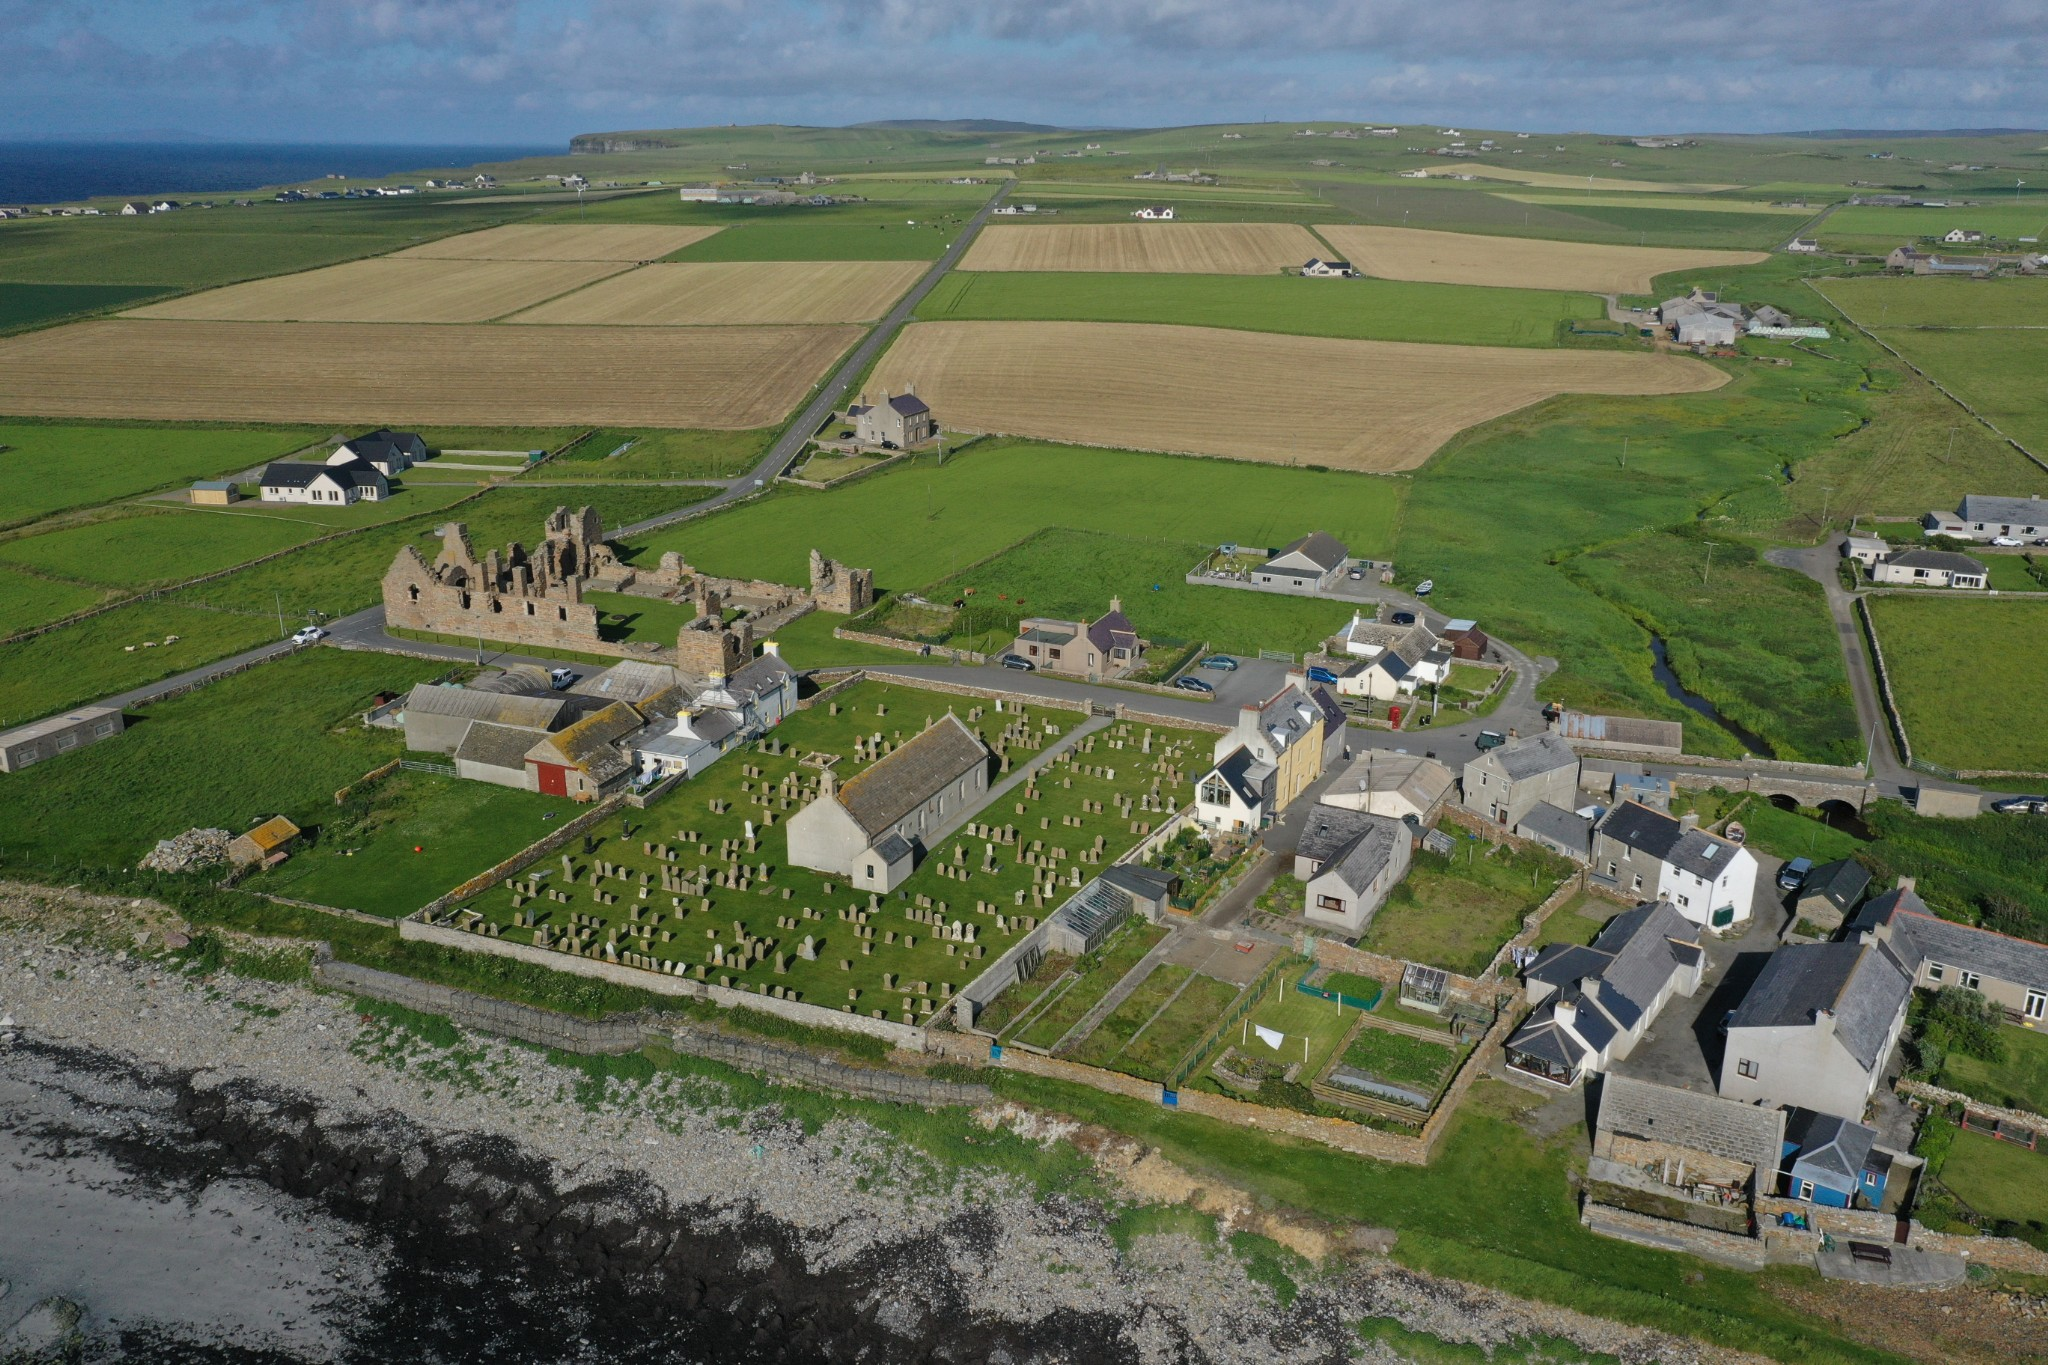 Aerial view of Palace village and the Earl's Palace, Orkney - image by Colin Keldie